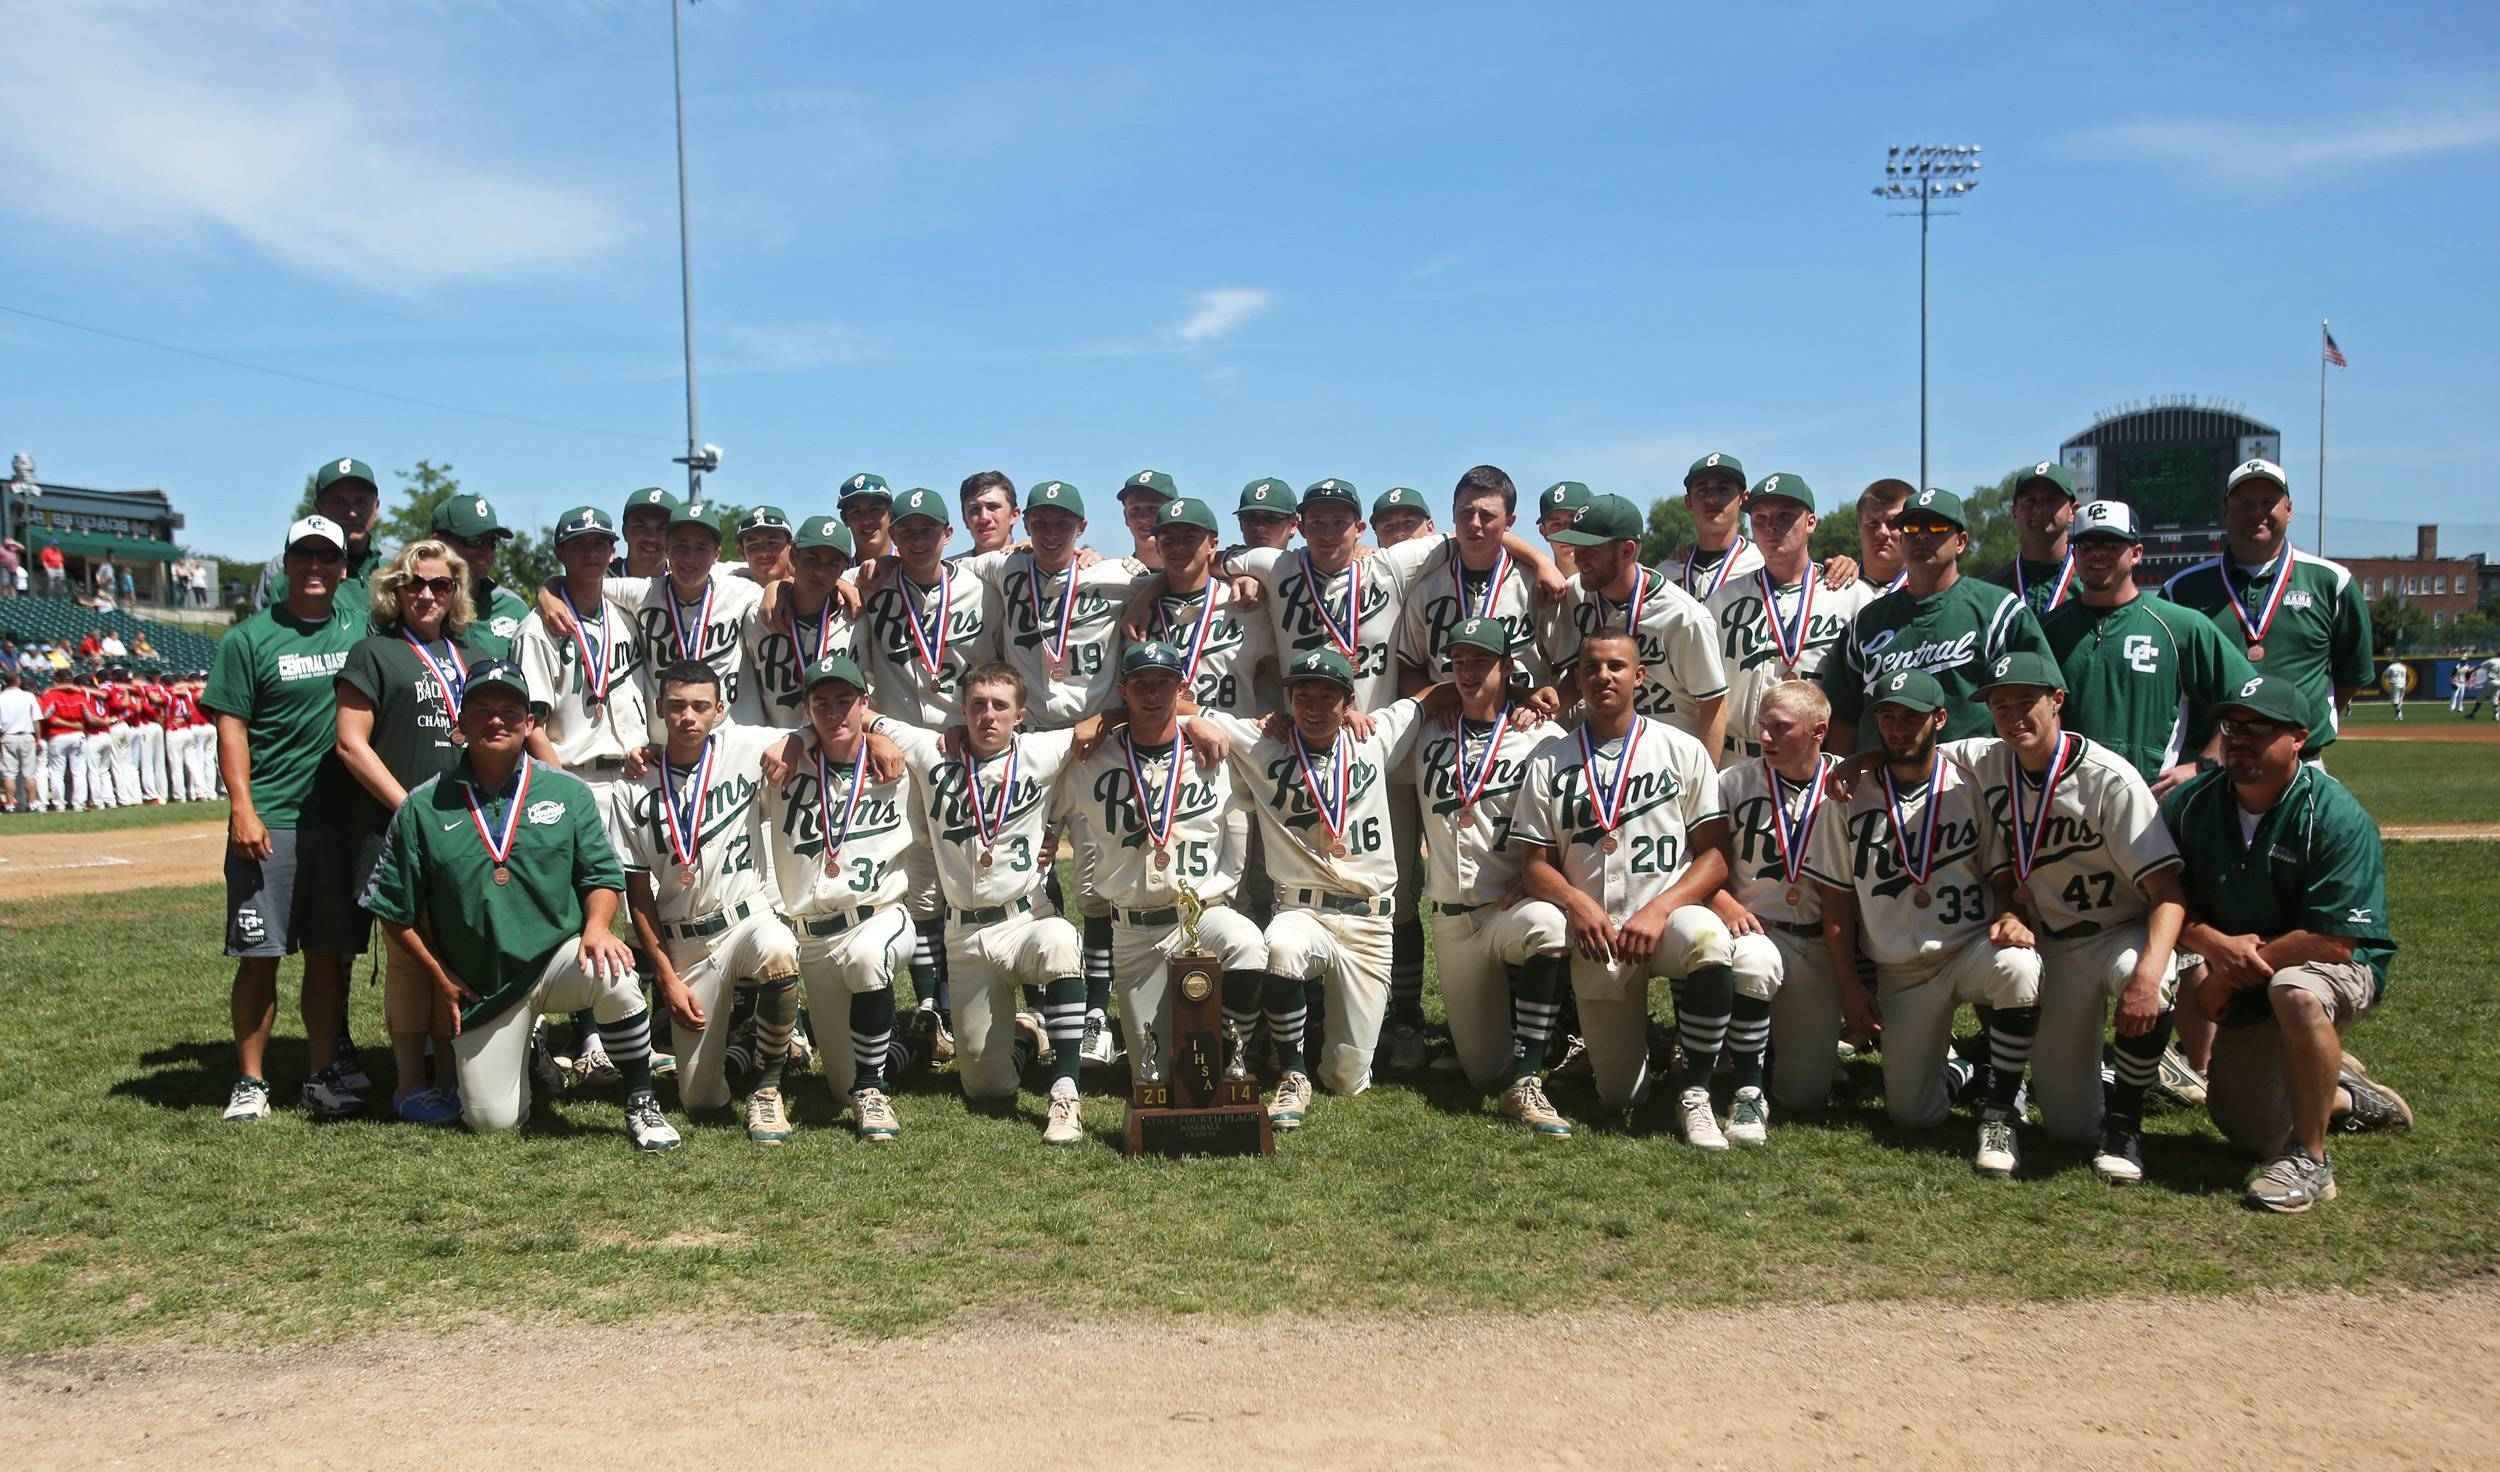 Grayslake Central earned a fourth place finish in the Class 3A baseball state tournament at Silver Cross Field in Joliet.